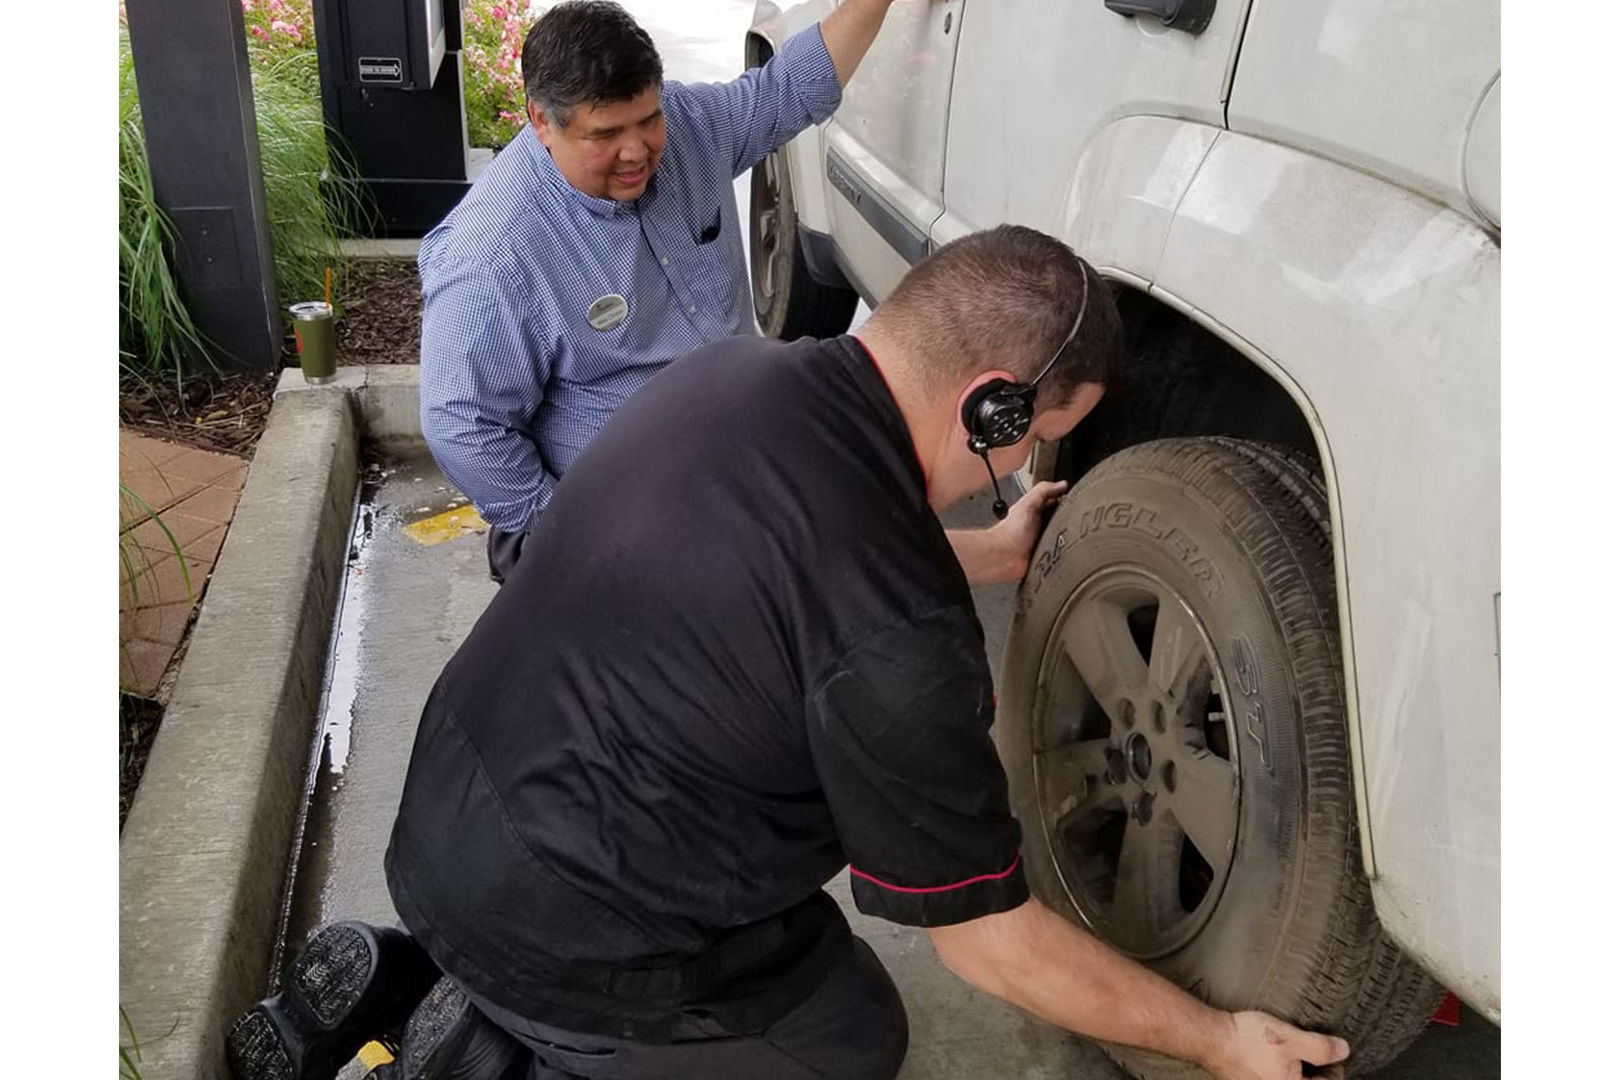 Chick-fil-A Employees Insist on Changing Customer's Tire After It Goes Flat in Drive-Thru